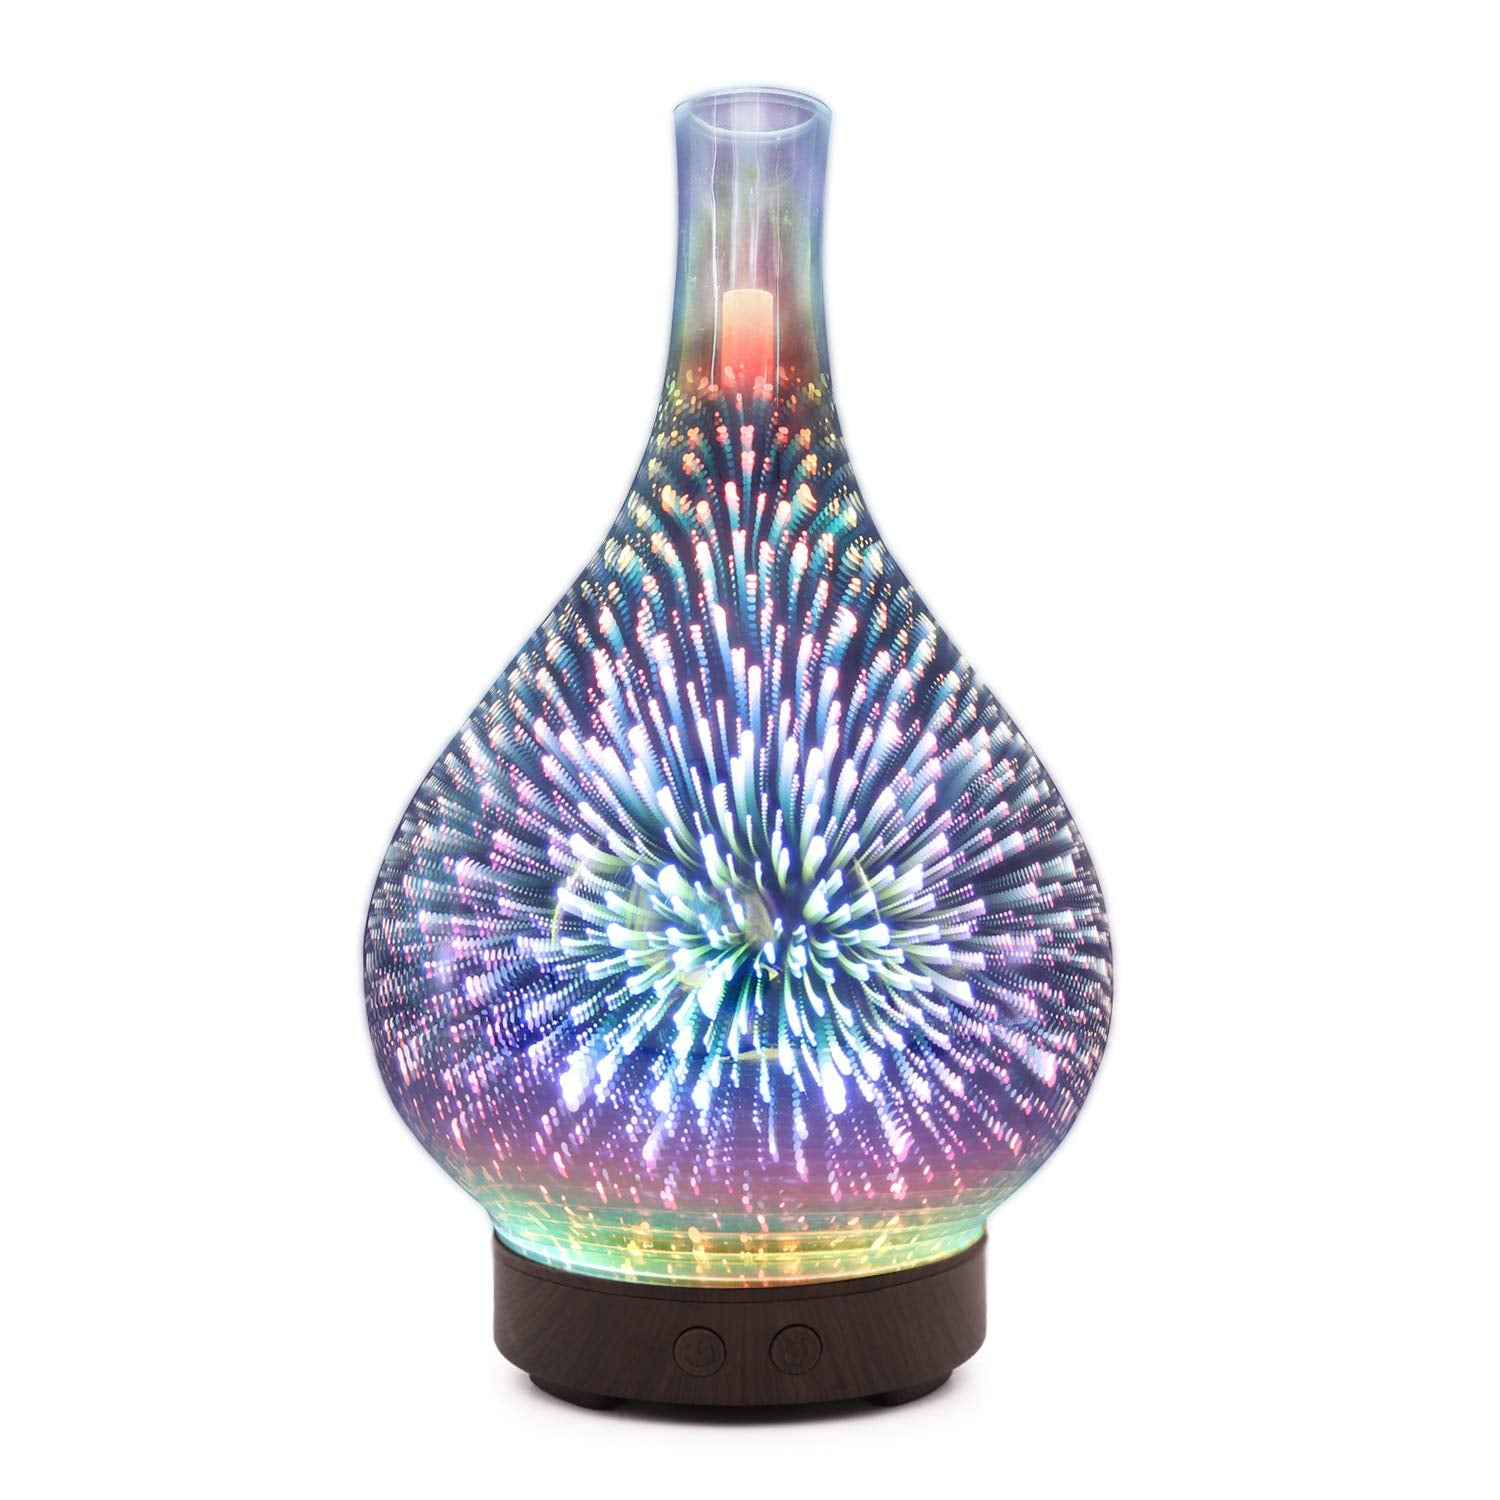 3D Firework Glass Vase Air Humidifier & Essential Oil Diffuser Mist Maker - Humidifiers